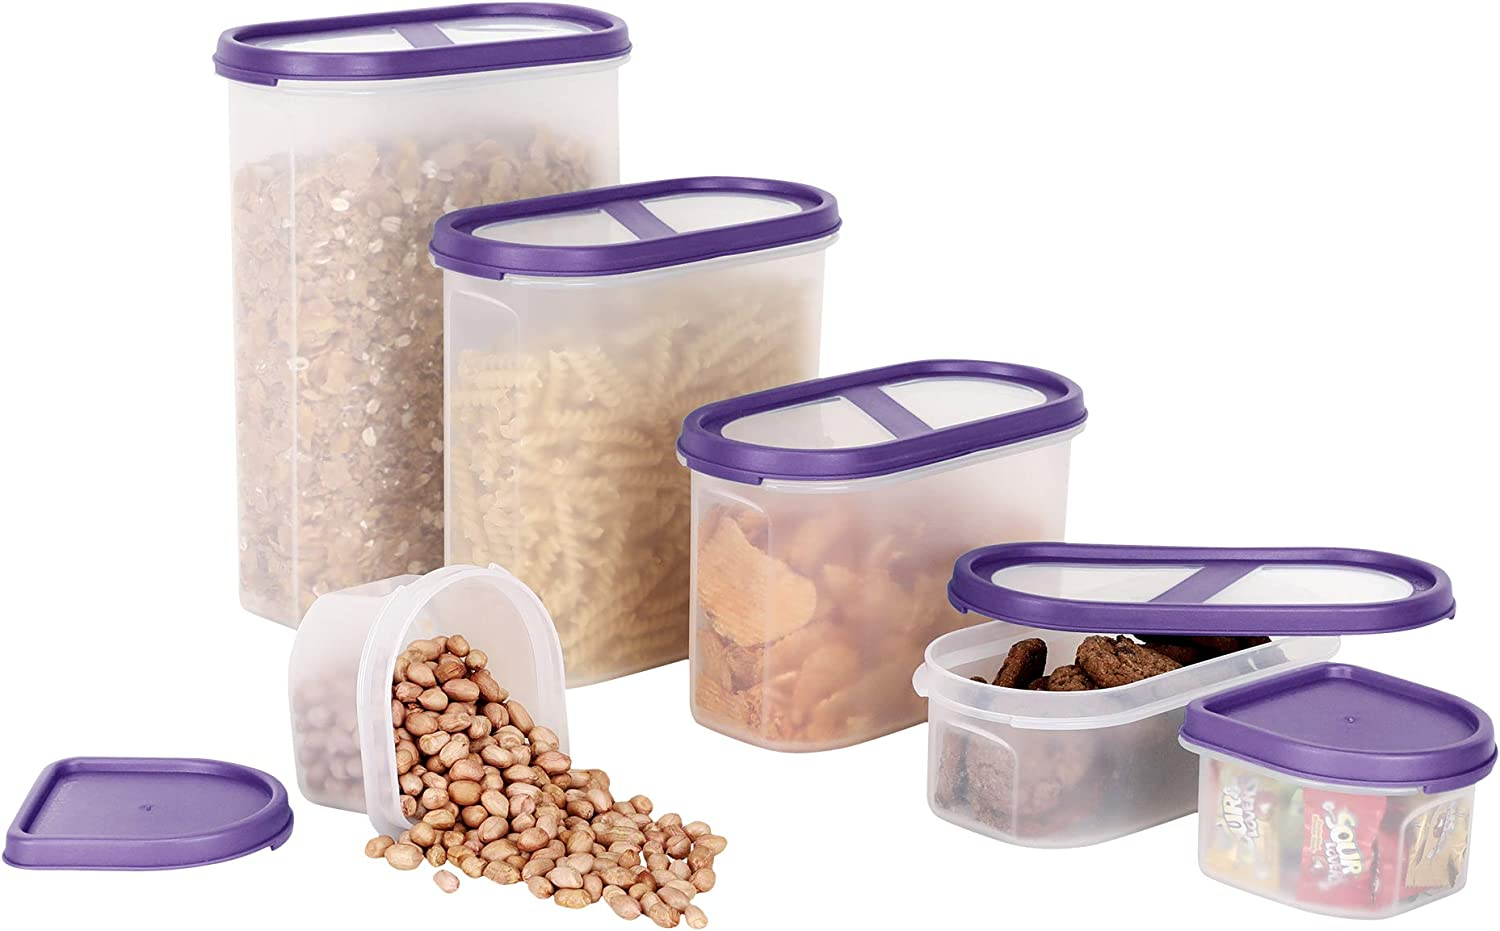 SIMPARTE 6 Container Set Pantry Airtight Cereal and Dry Snacks Food Storage Containers   Microwave & Dishwasher Safe   BPA Free   Freezer Safe   Space Saver Modular Design (Purple Lids)